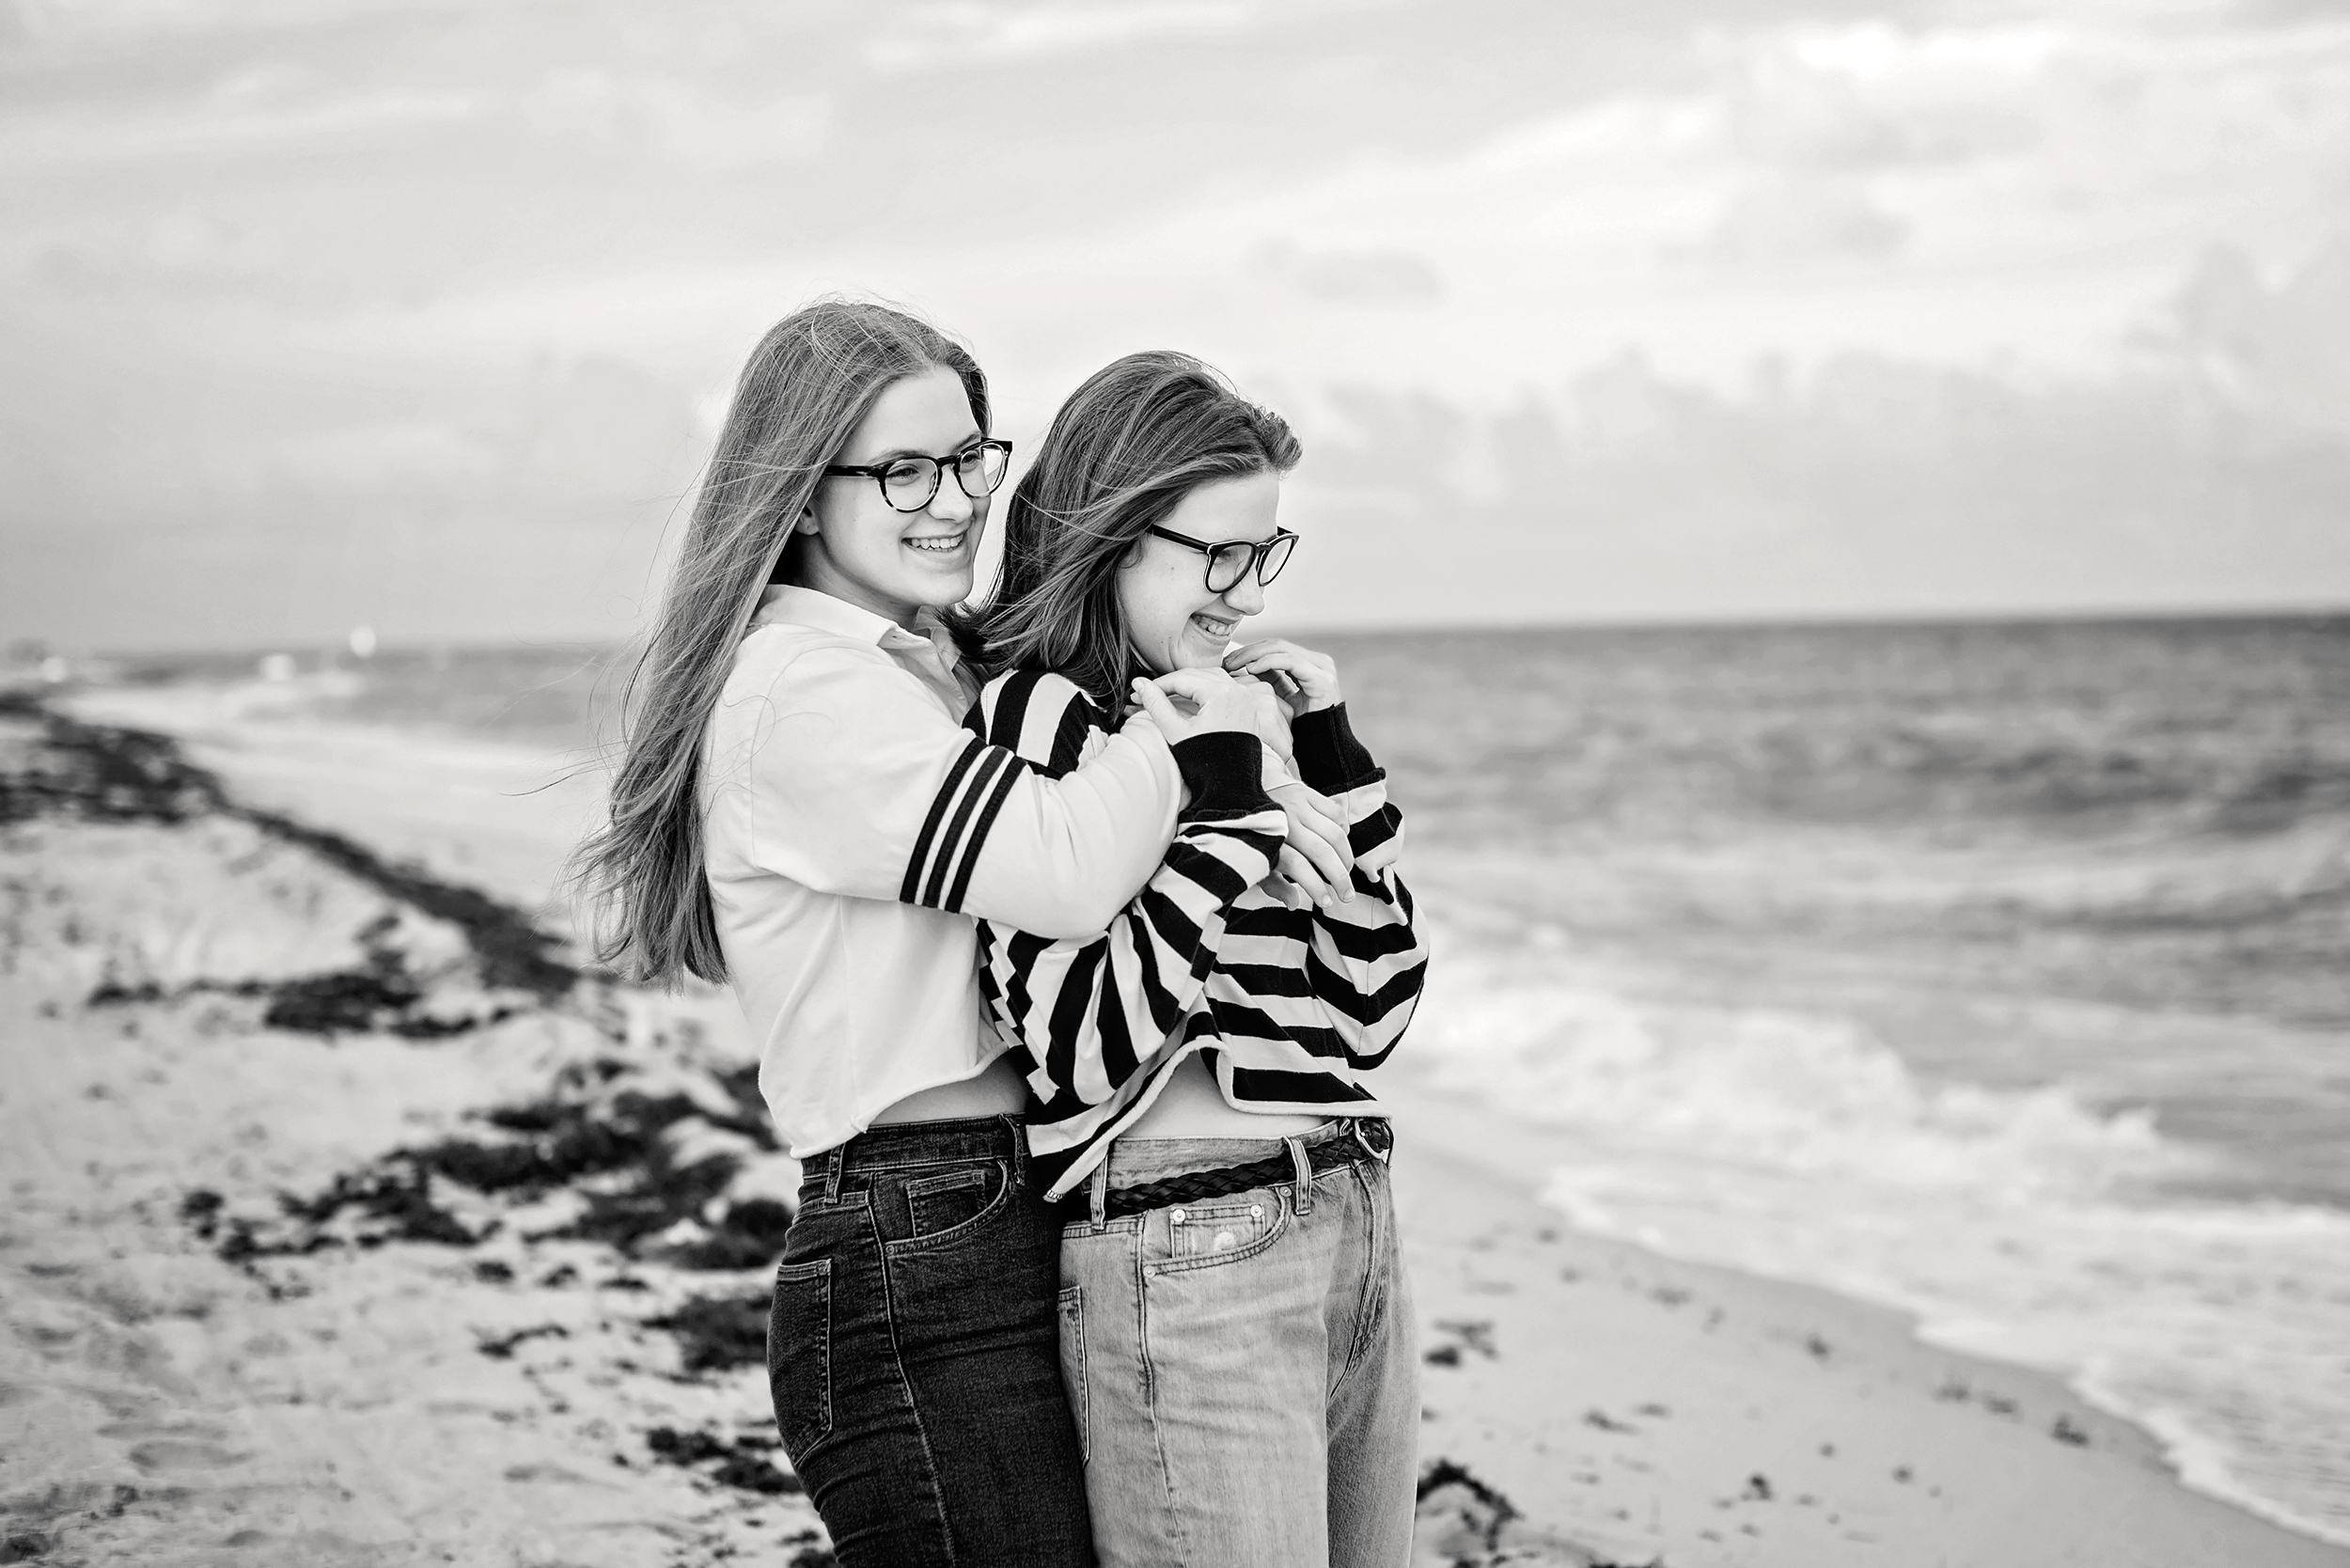 teens-tweens-teenagers-photography-south-florida-alison-frank-photography_34.jpg